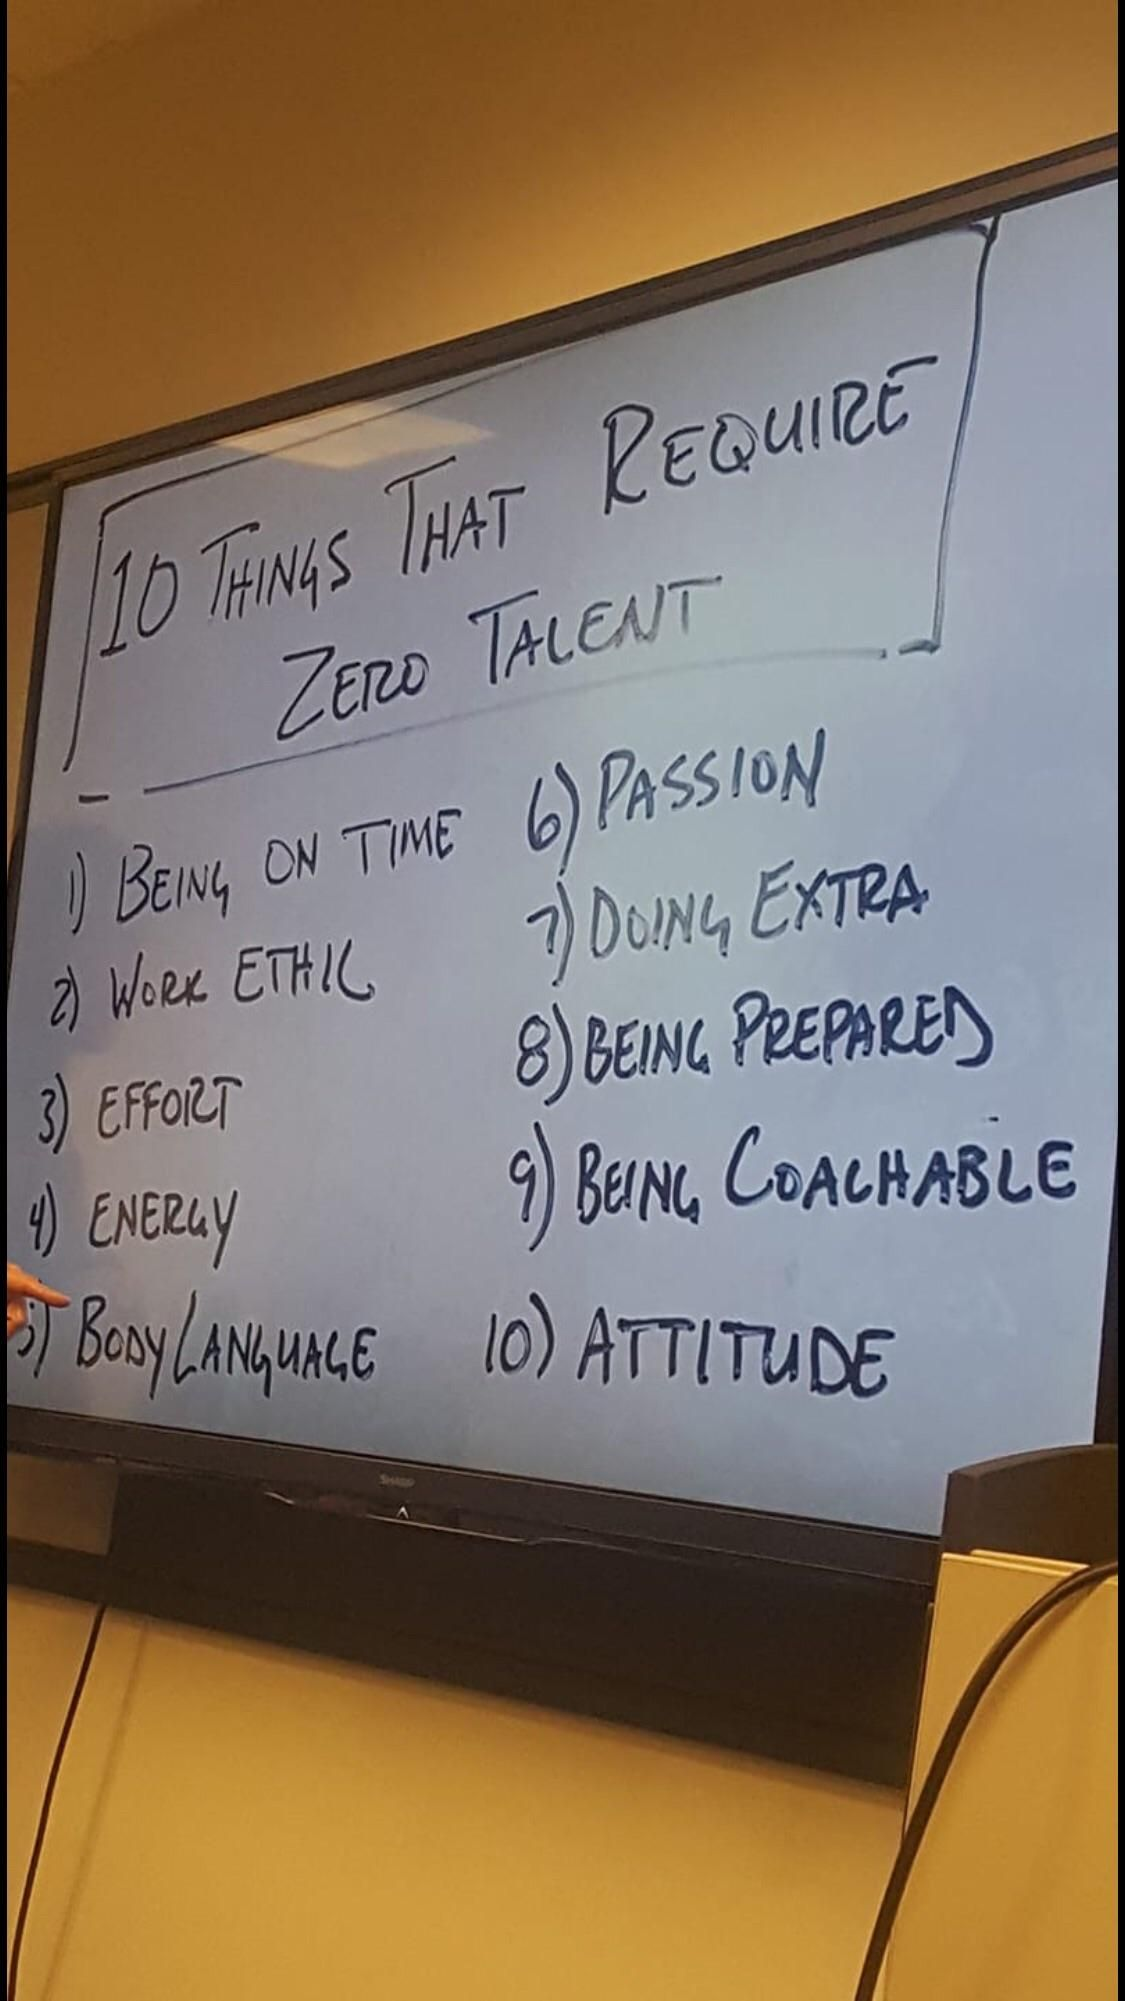 Image 10 Things That Require Zero Talent Getmotivated